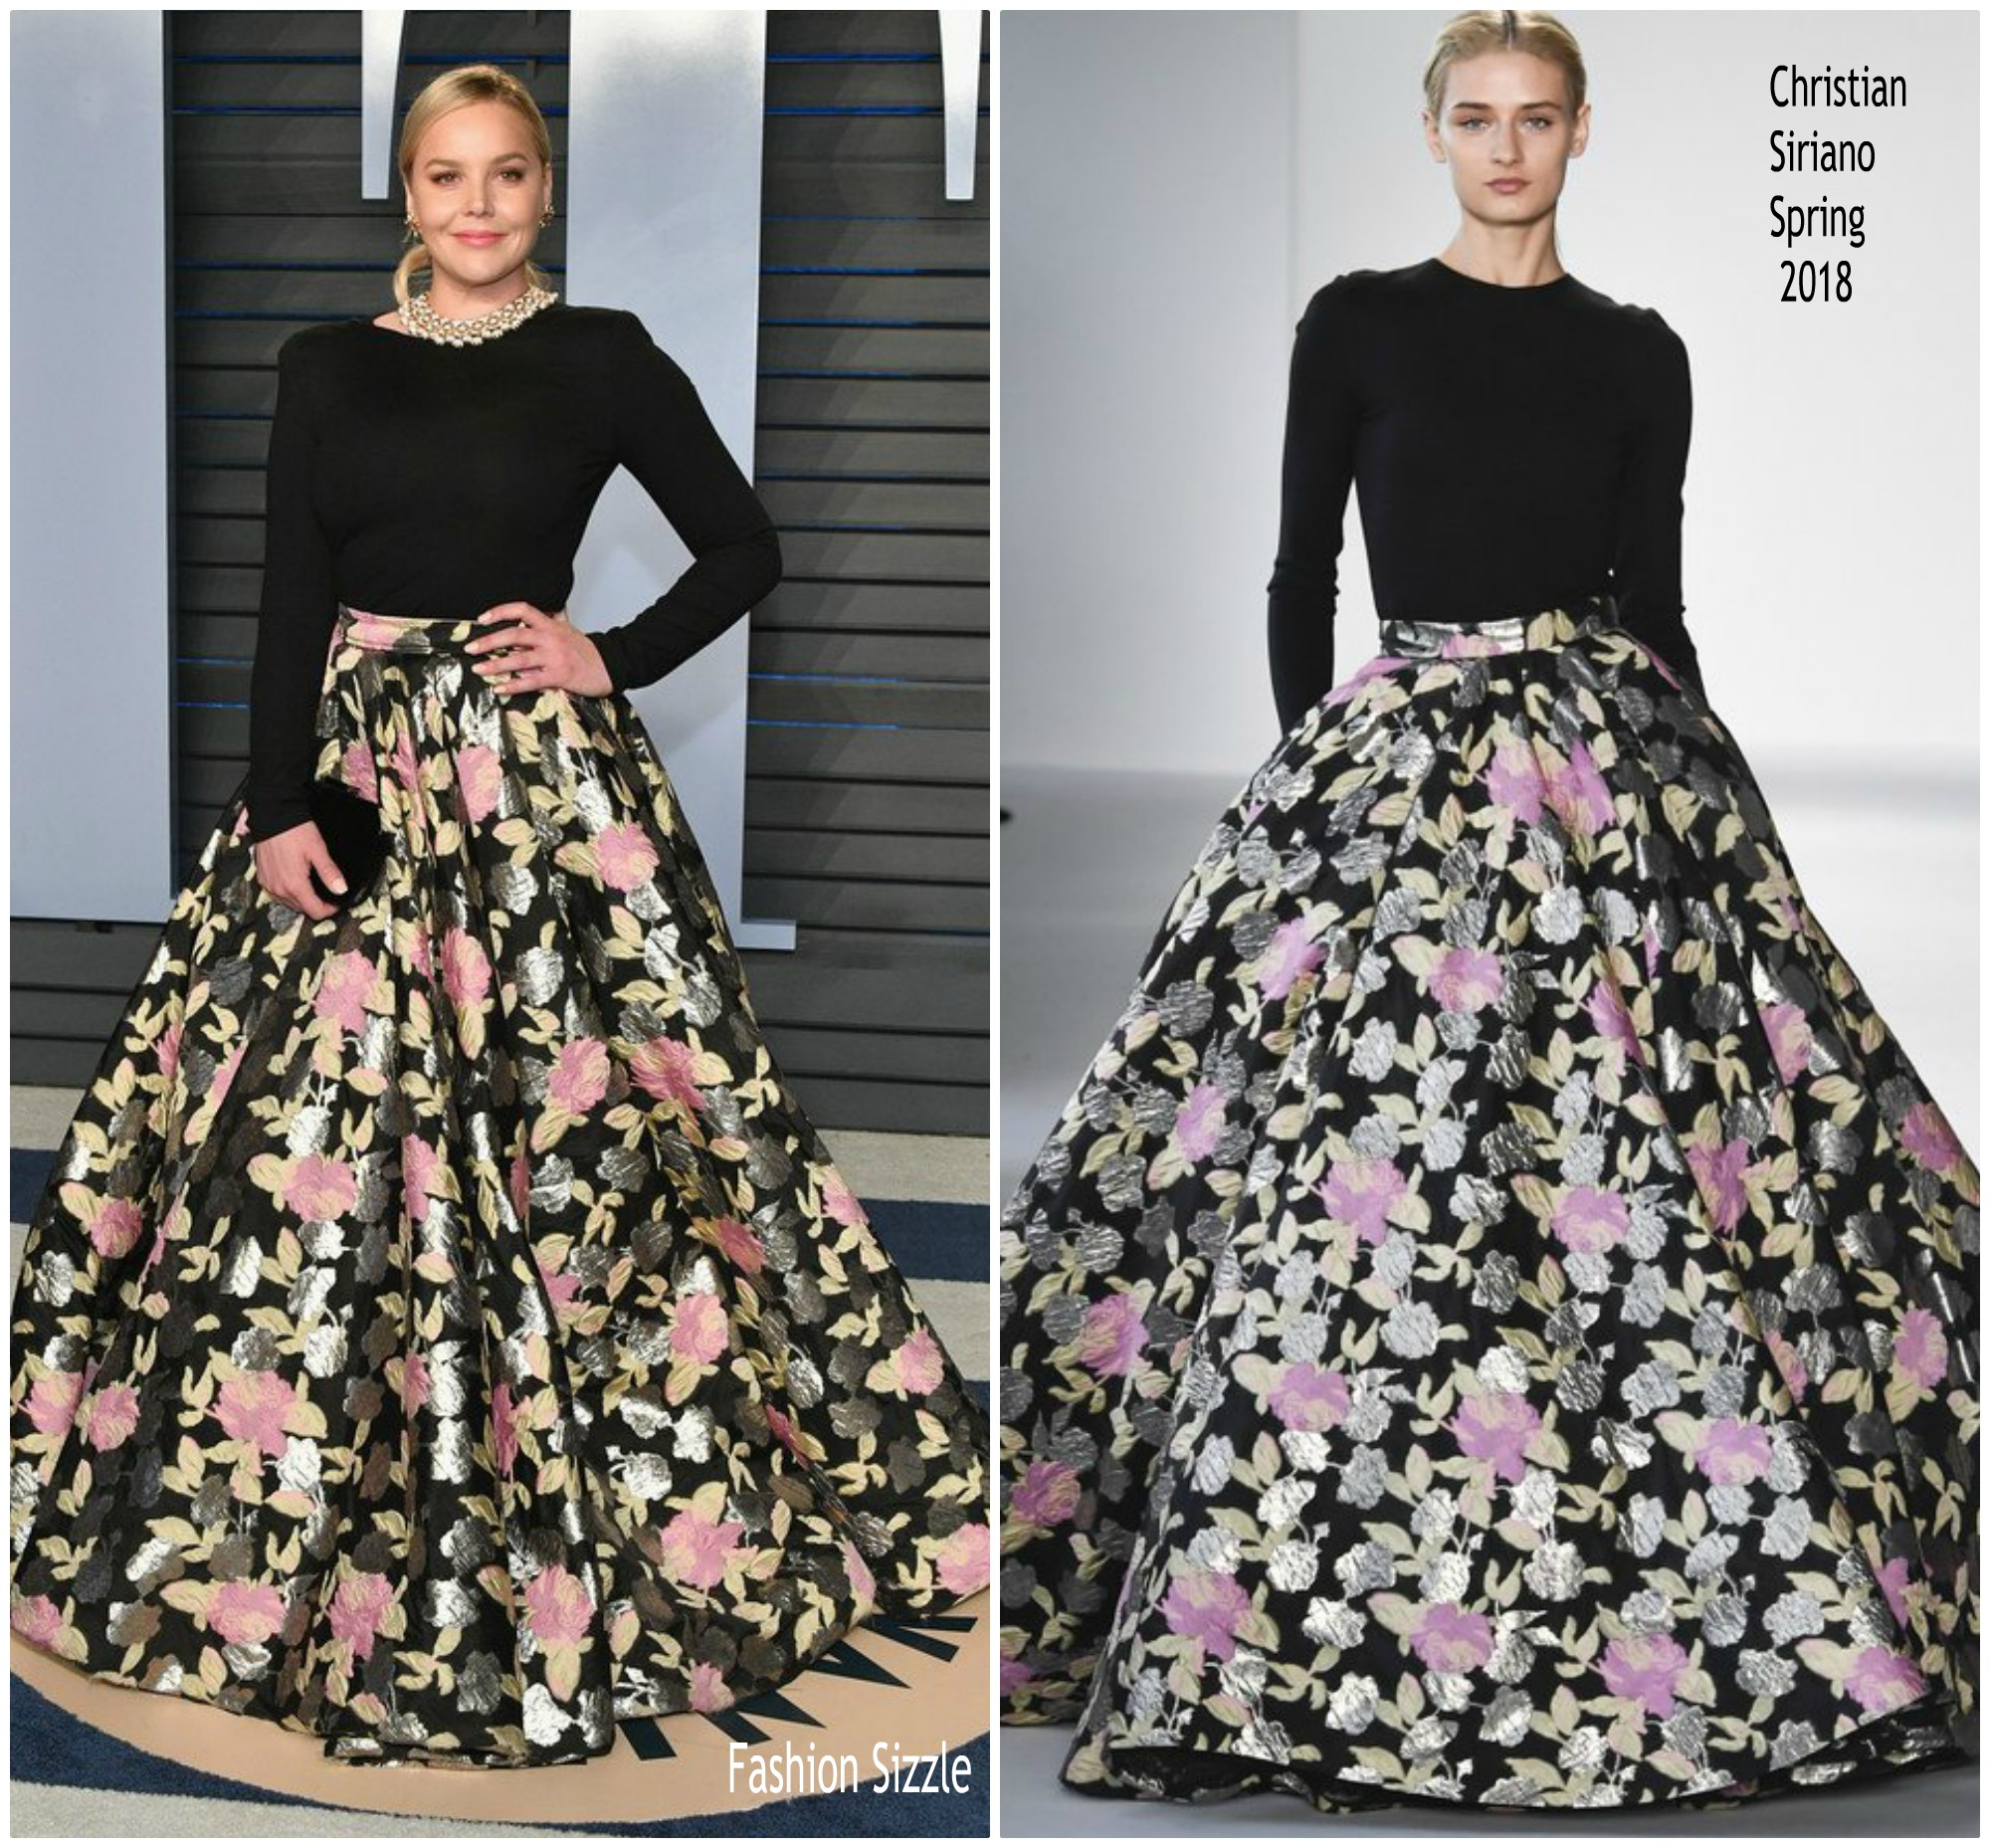 abbie-cornish-in-christian-siriano-2018-vanity-fair-oscar-party